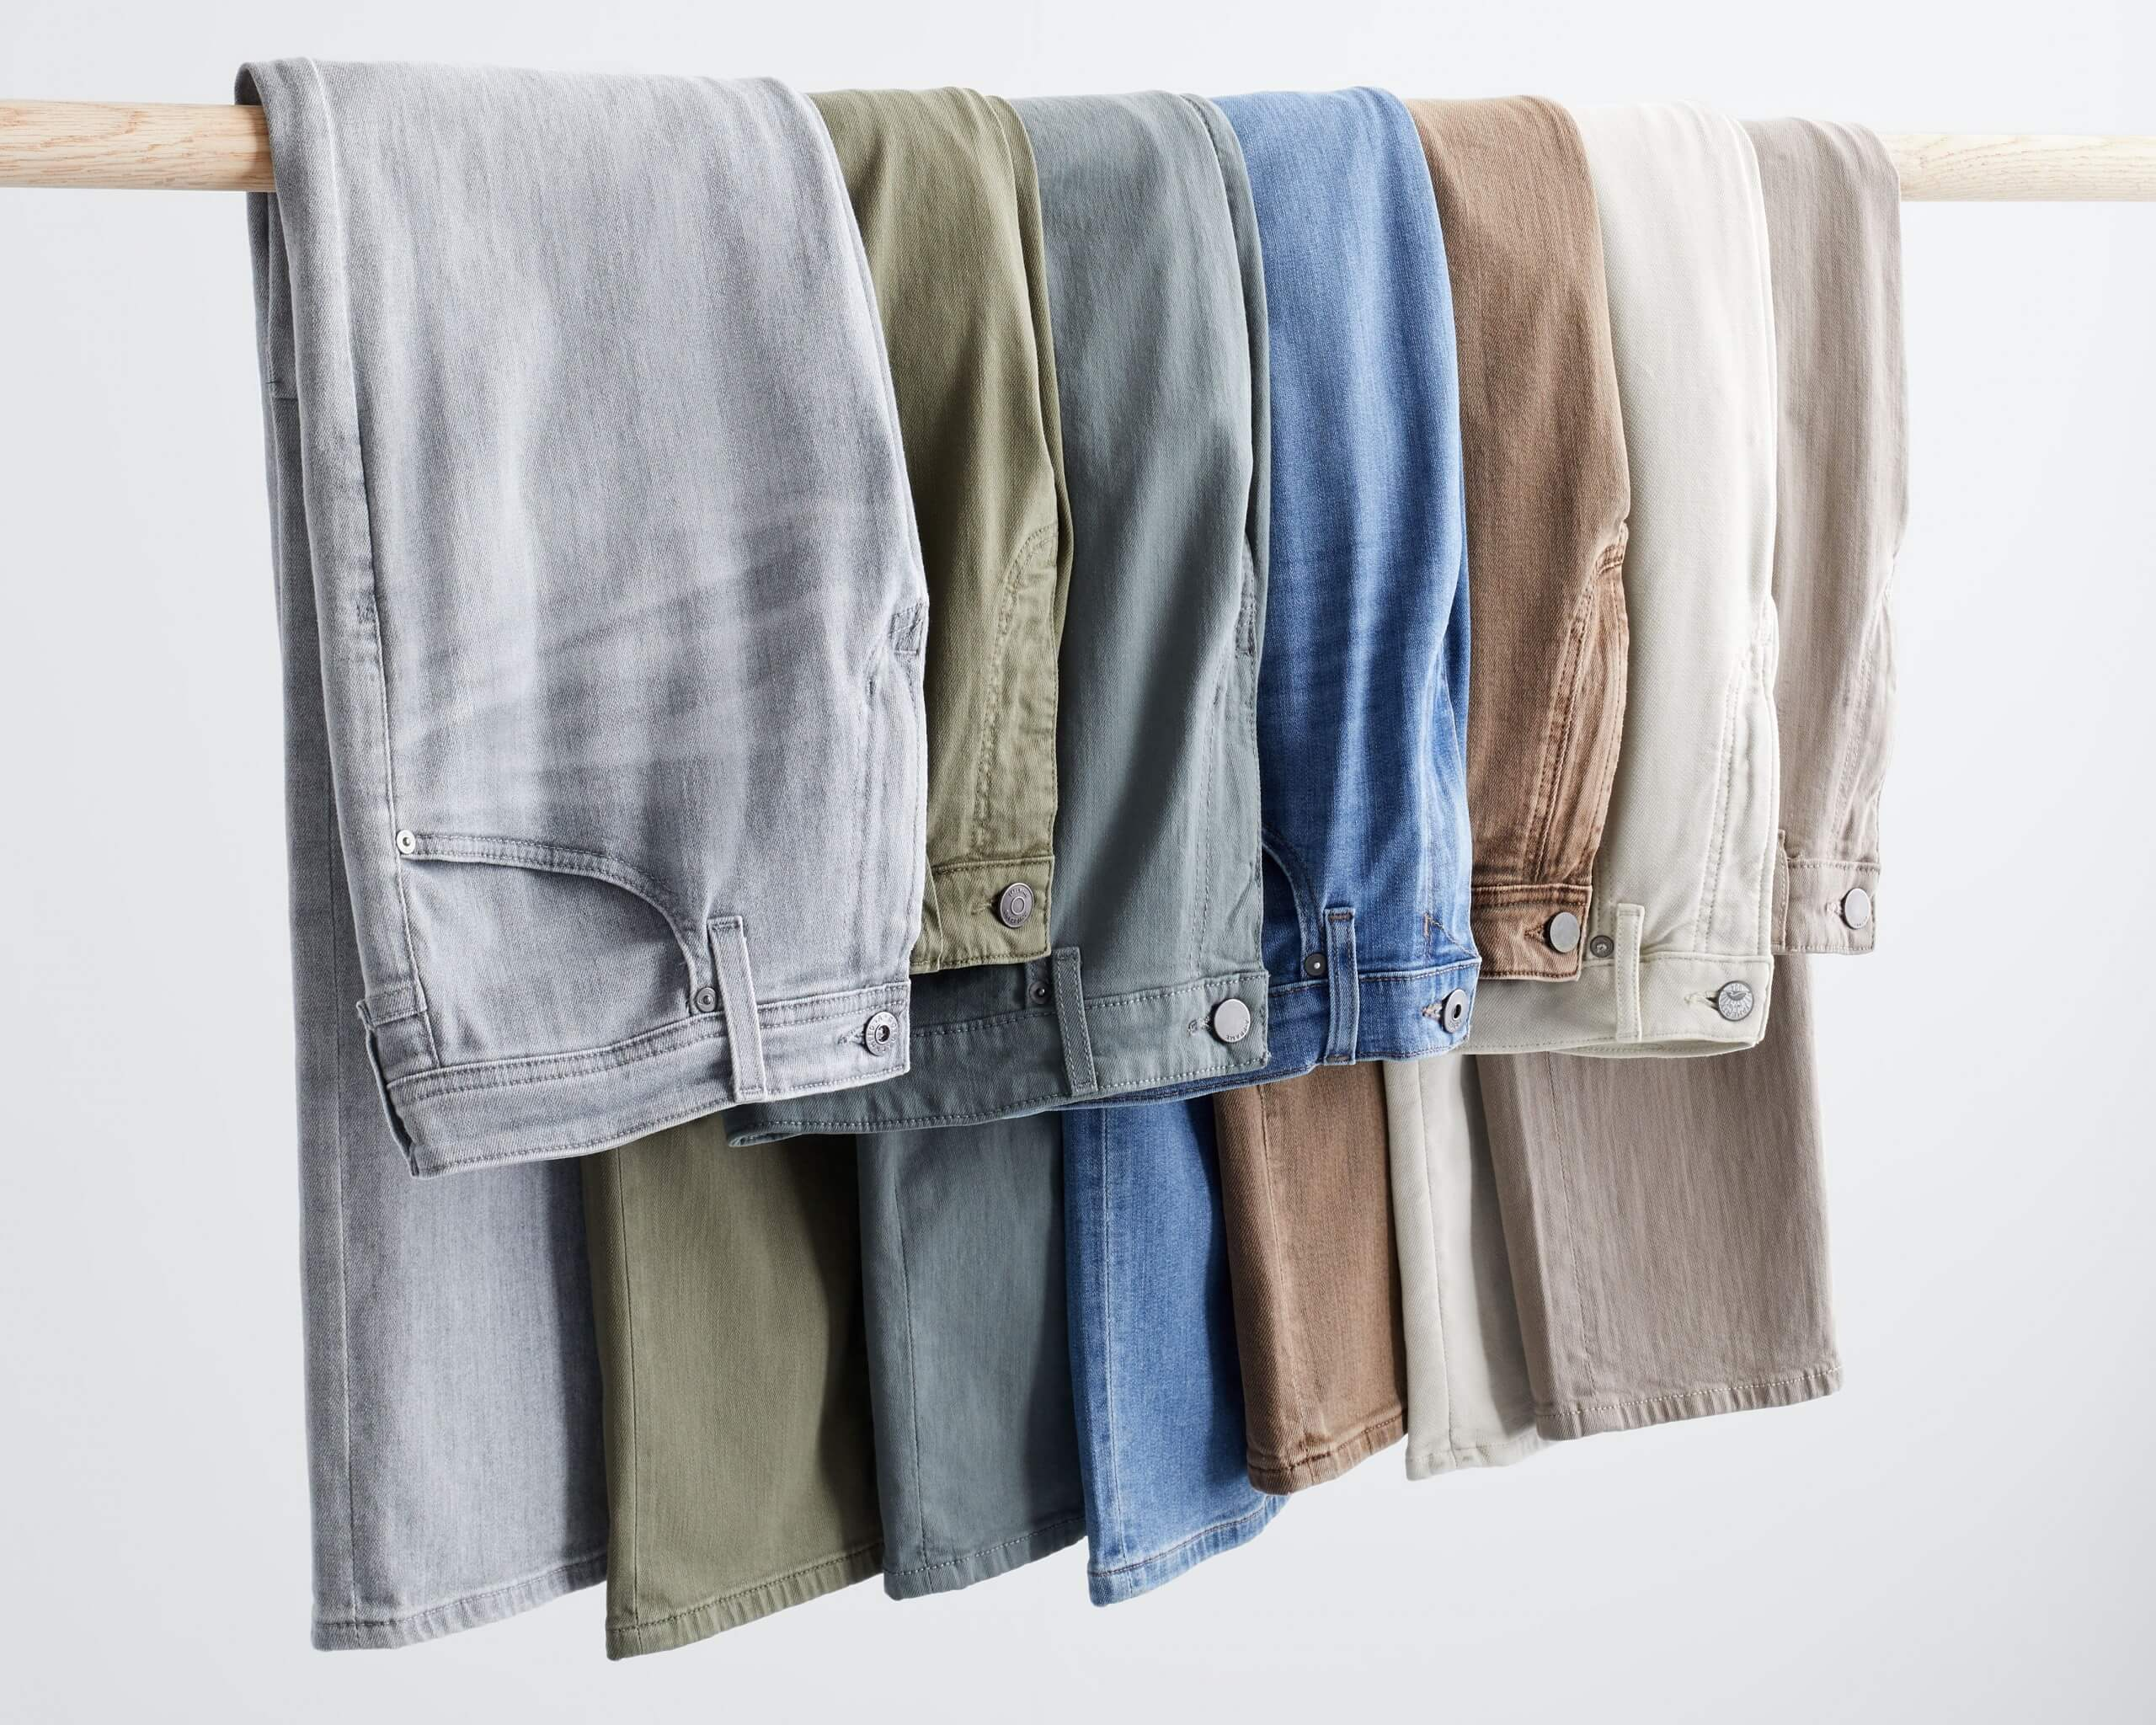 Stitch Fix rack image of grey jeans, green jeans, blue jeans, and brown jeans.